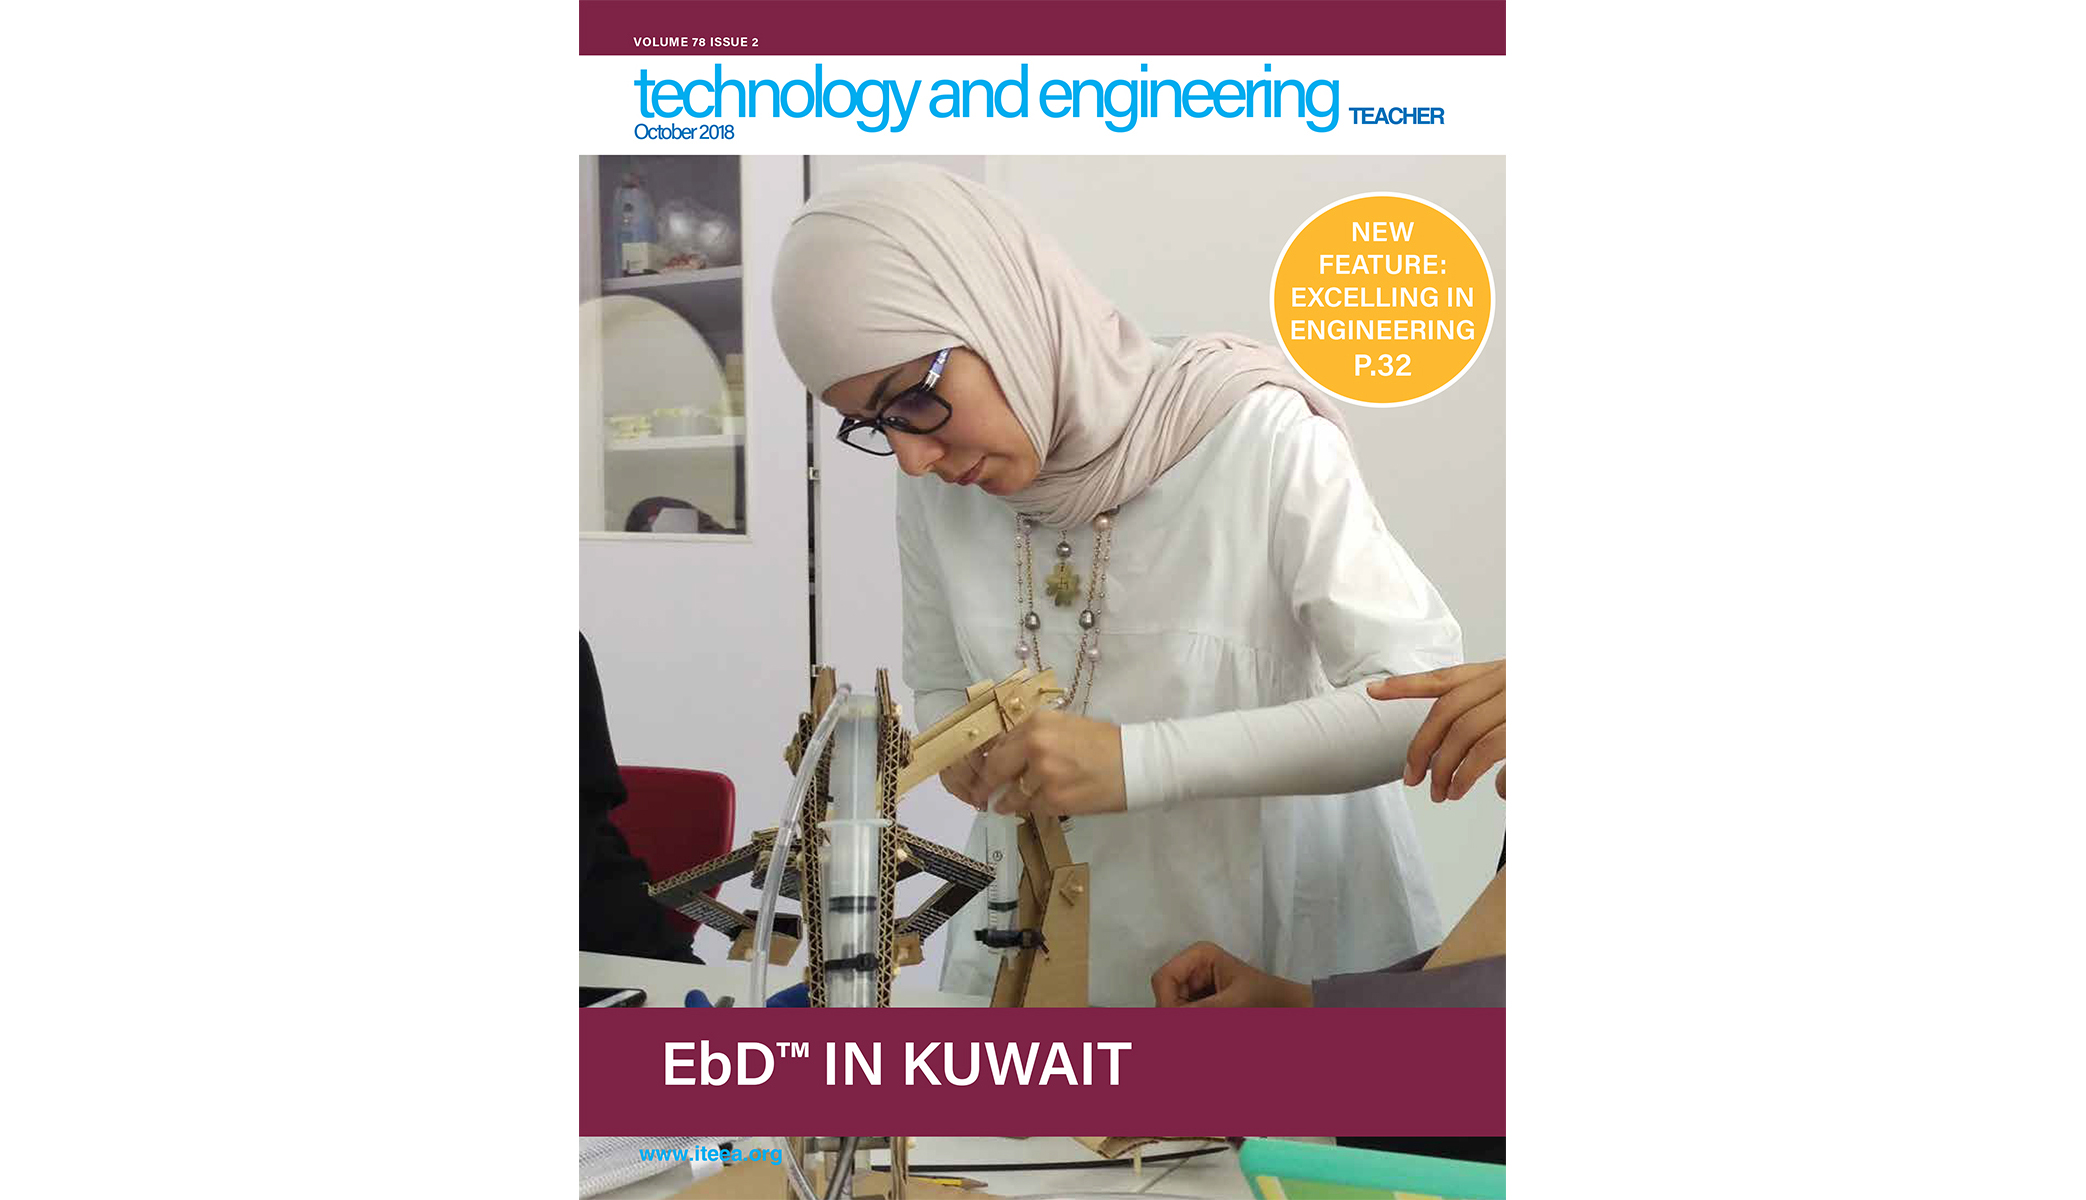 Here's a Sample of What's Available in the October 2018 issue of Technology and Engineering Teacher